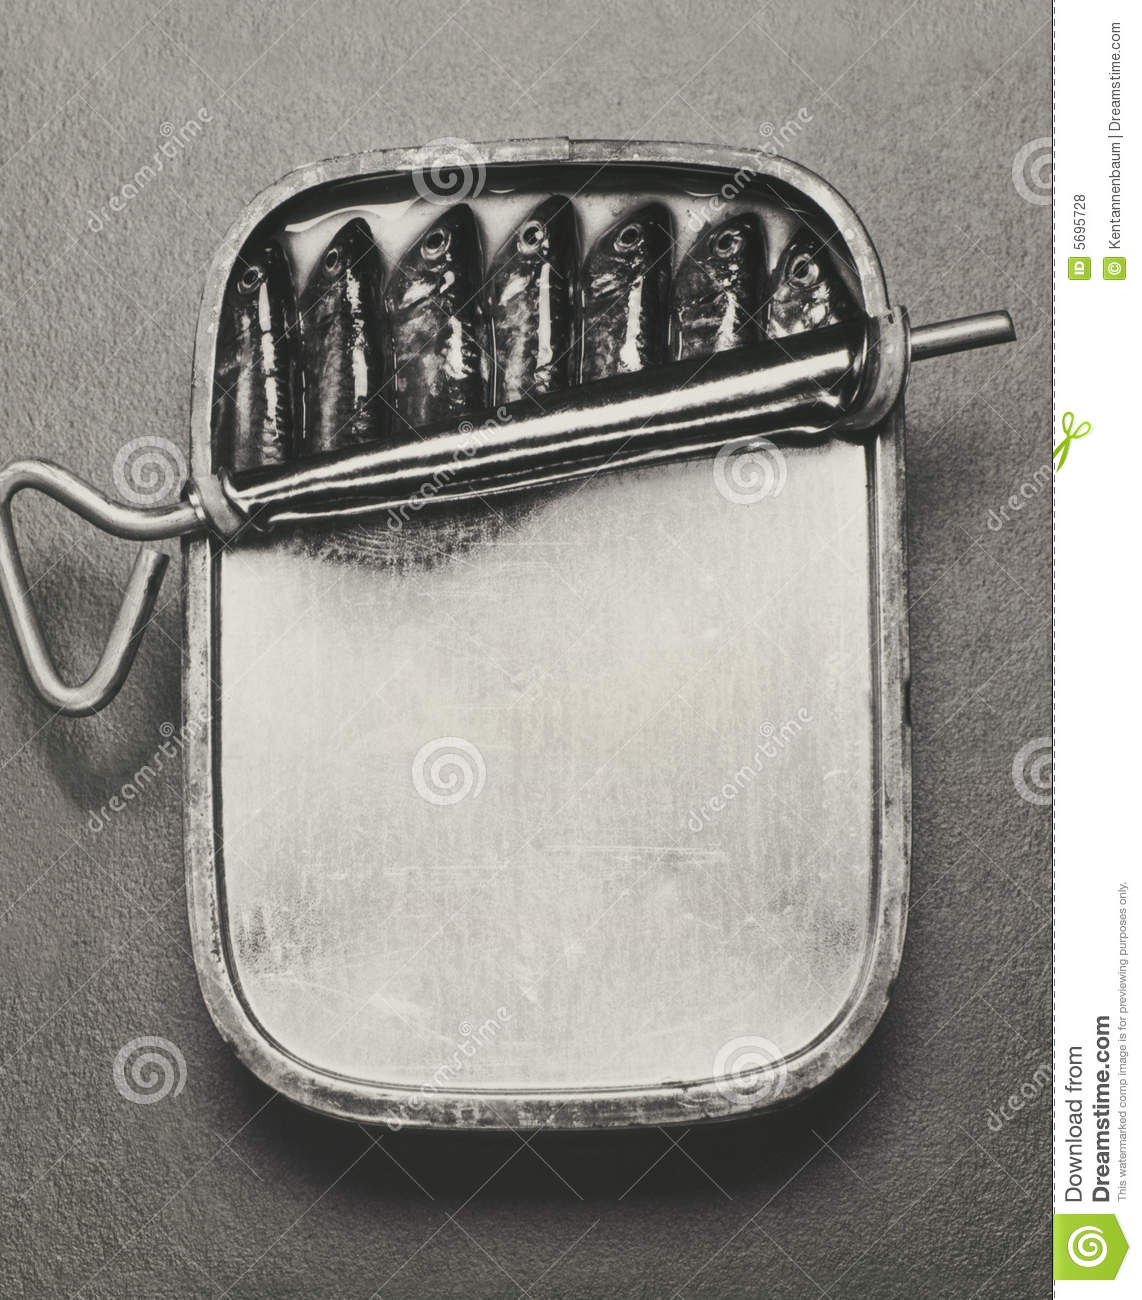 Sardine can royalty free stock photos image 5695728 for Empty sardine cans